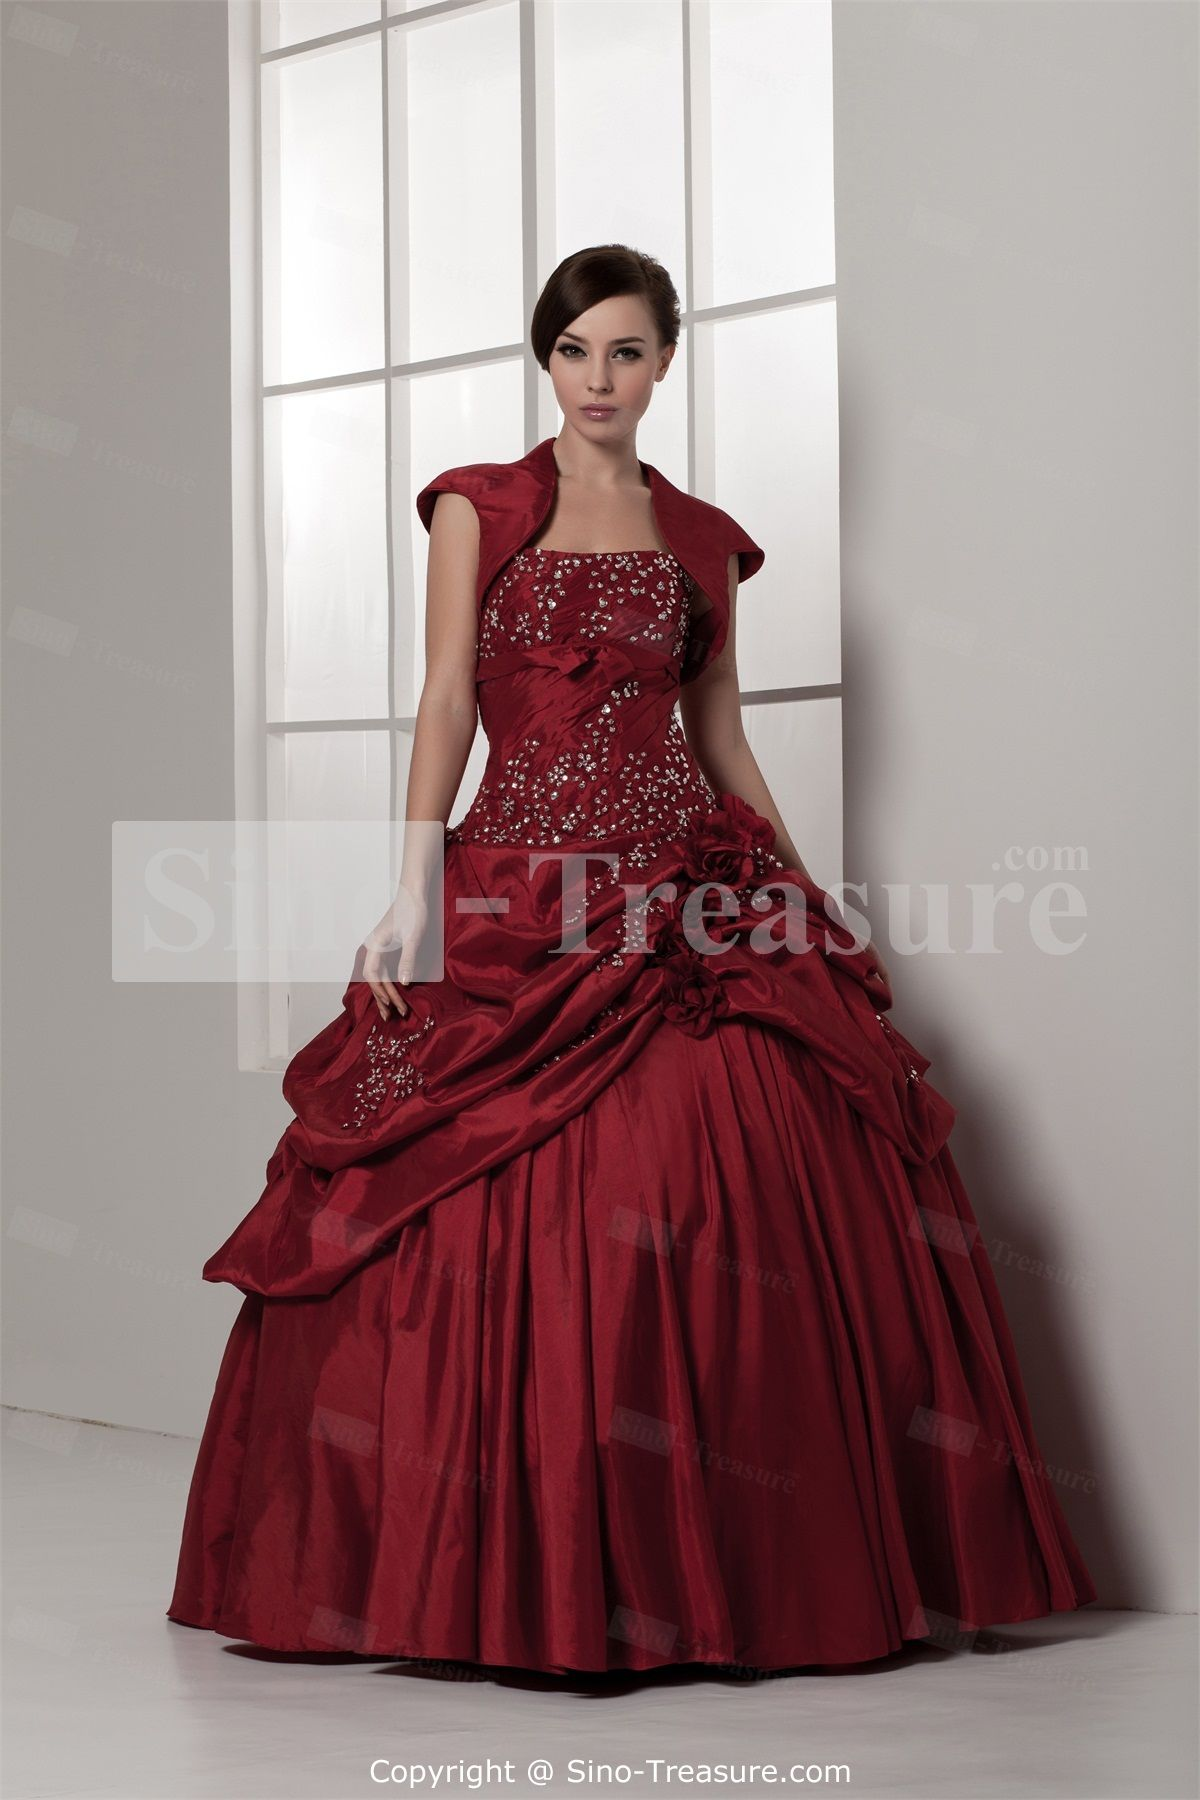 Beautiful Satin/Taffeta Beading Floor-Length Sleeveless Prom Dresses -Wedding & Events-Special Occasion Dresses-Prom Dresses